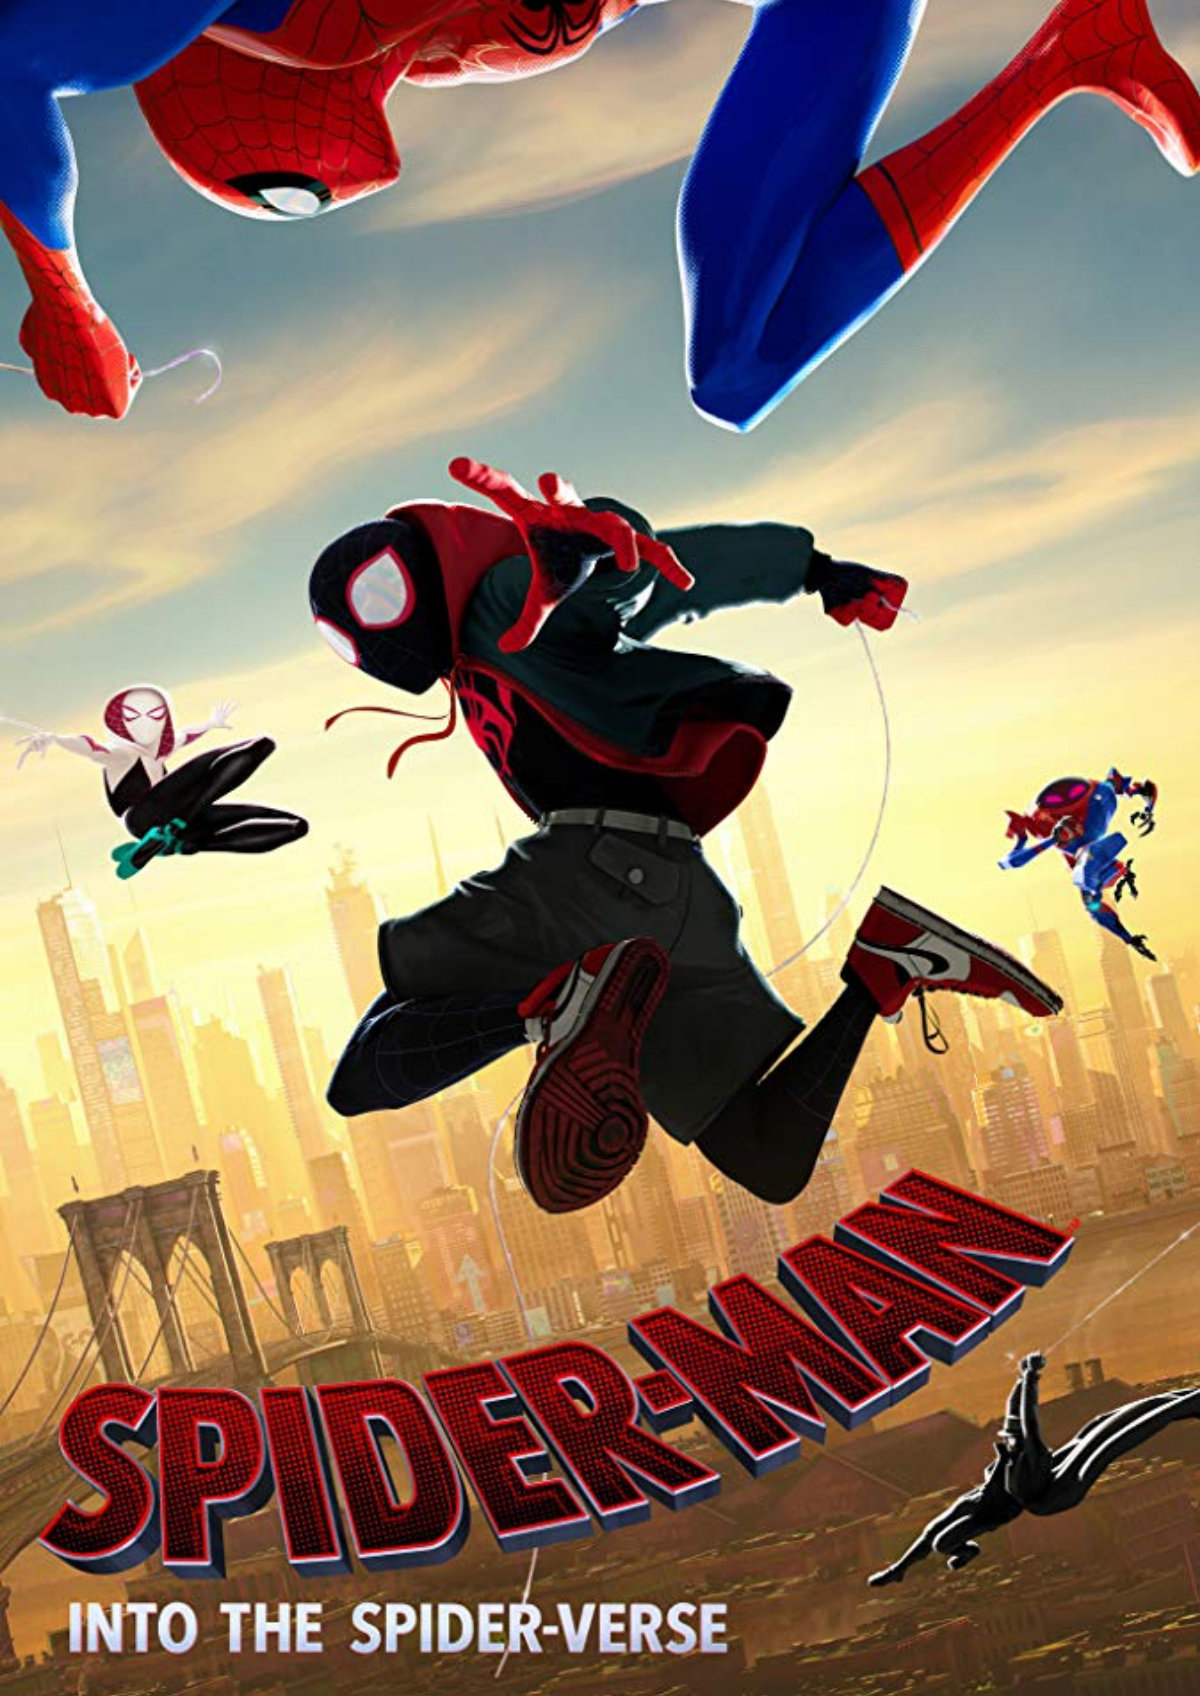 'Spider-Man: Into The Spider-Verse' movie poster